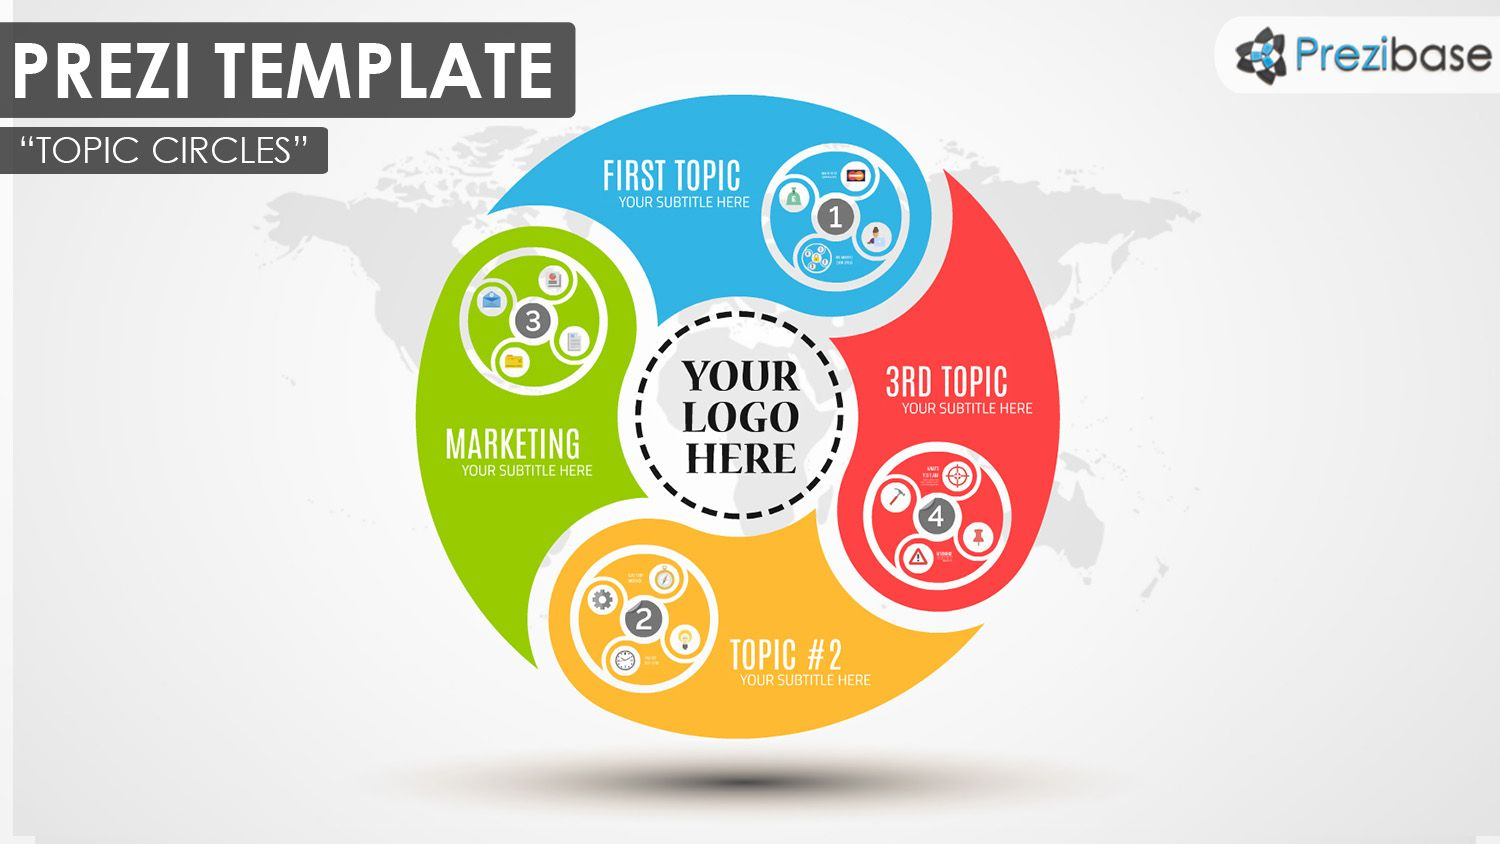 Ladders To The Sky Prezi Template  Ziload  Prezi Templates